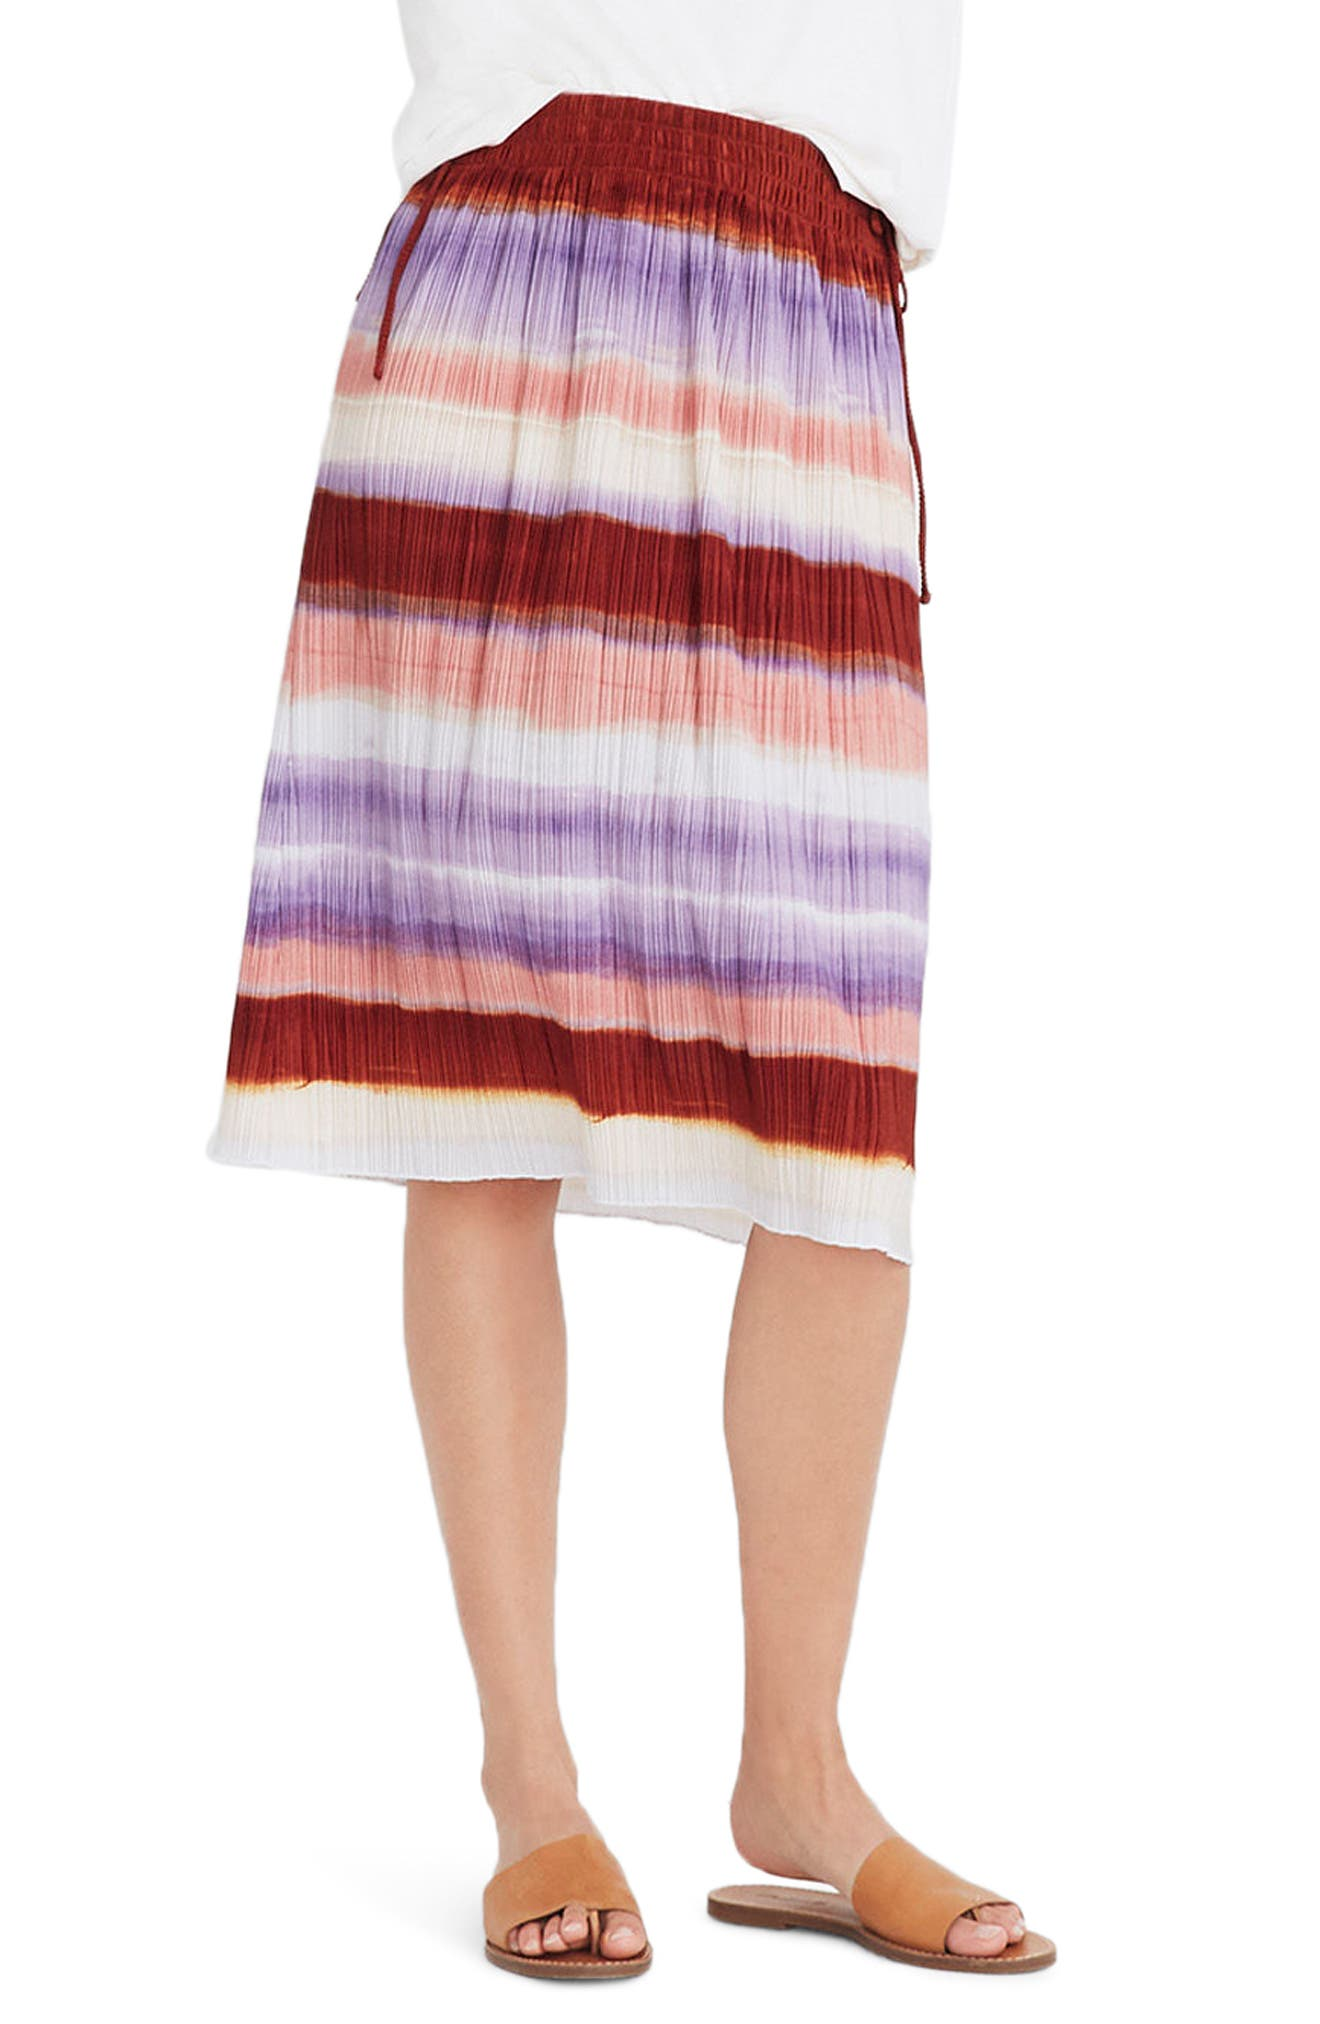 Texture & Thread Ombré Rainbow Micropleat Midi Skirt,                         Main,                         color, CLEMENTINE CREAM